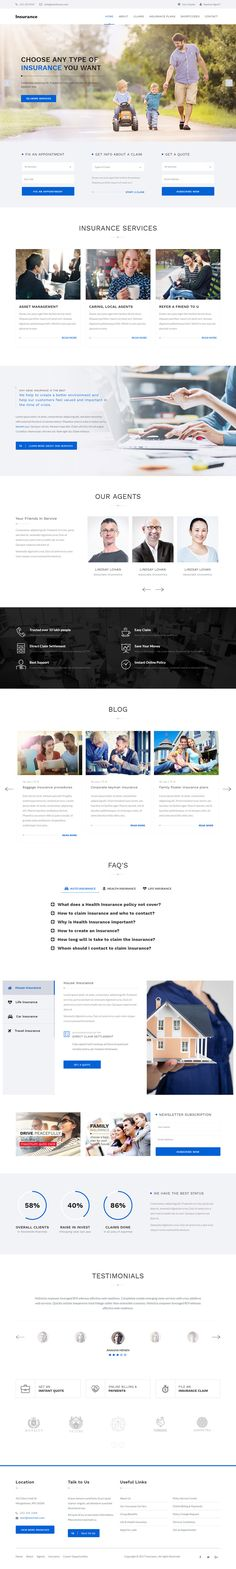 #Insurance is a graceful WordPress theme especially created for the insurance company, consulting, agency, independent auditor and trading company websites.